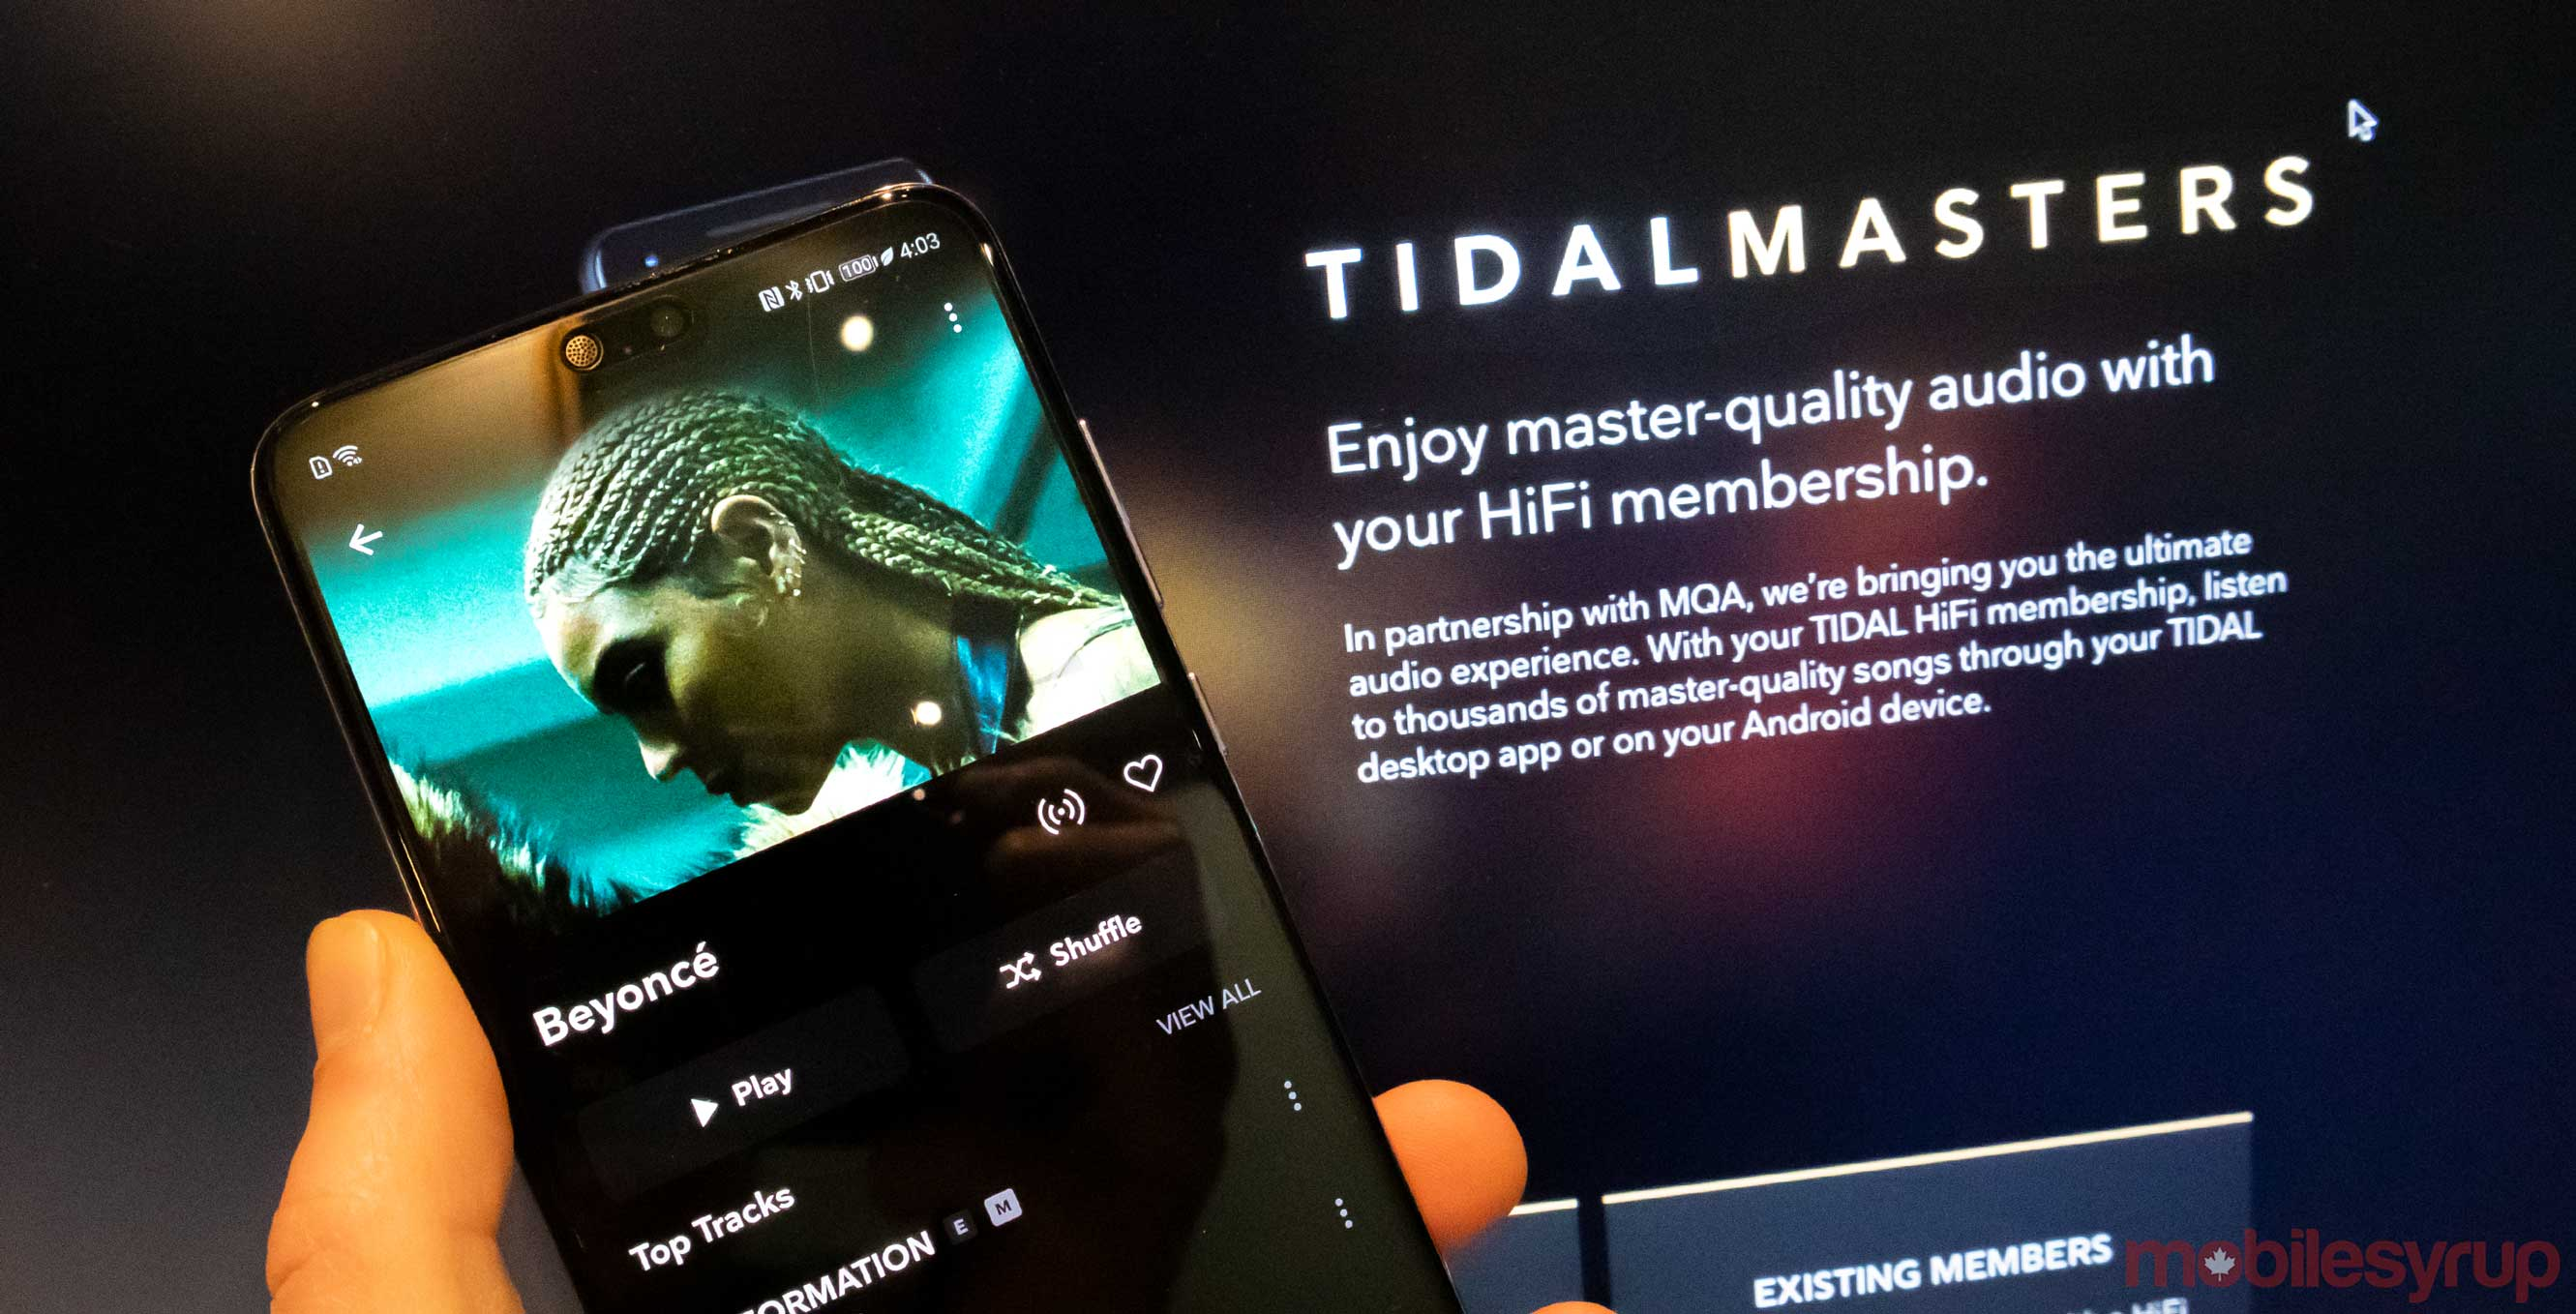 Tidal bring 'Master' MQA audio quality to its Android app